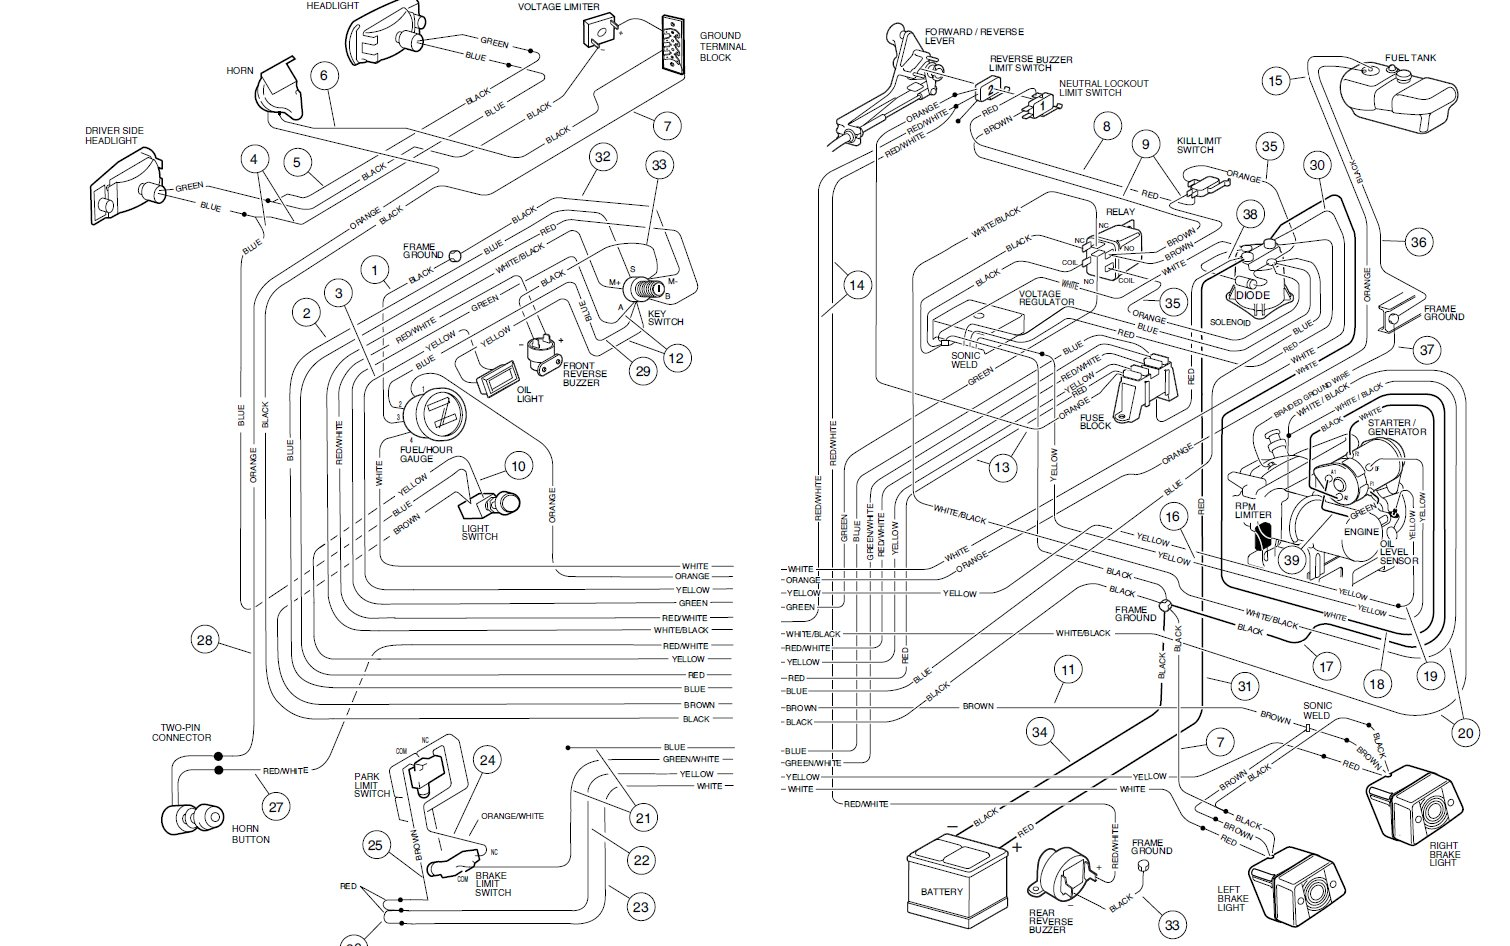 Wiring Diagram For Club Car Golf Cart Powerking